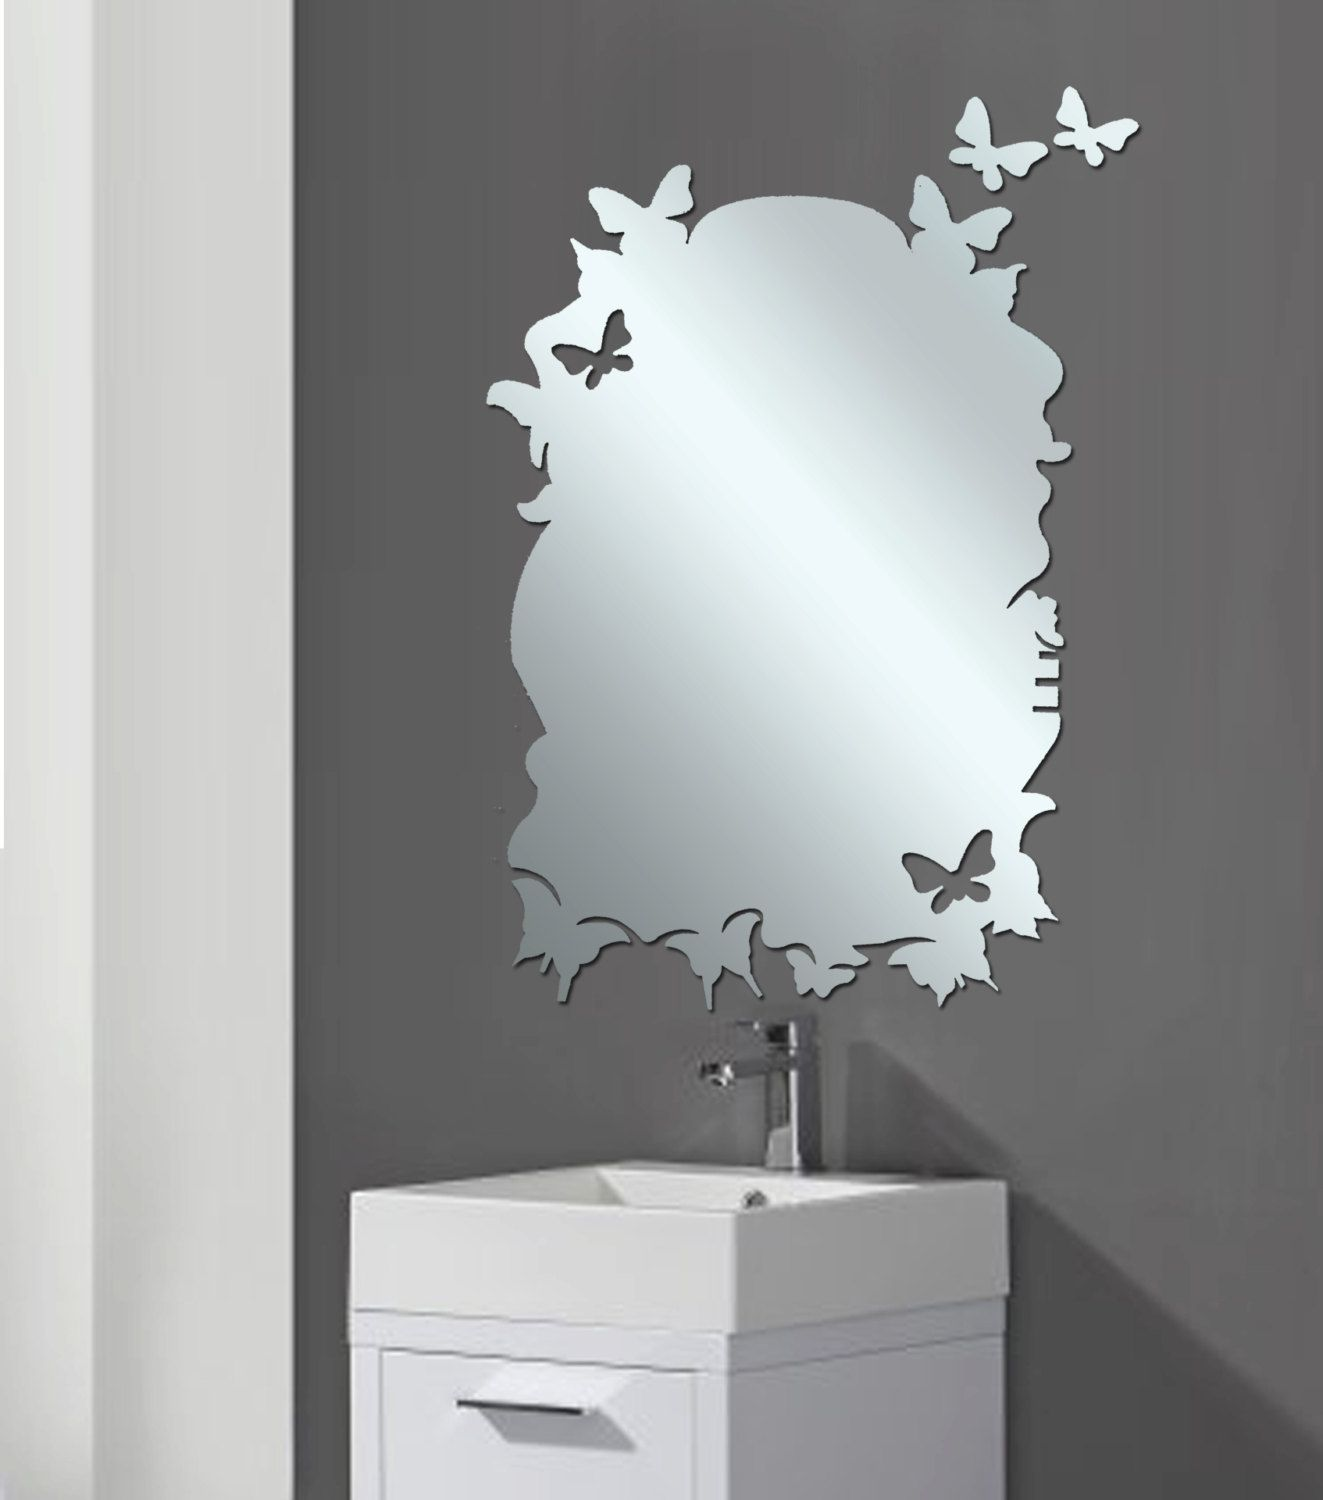 ideas wonderland d x odelia design bevelled mirror projects bathroom cor dimensions mirrors for in oval